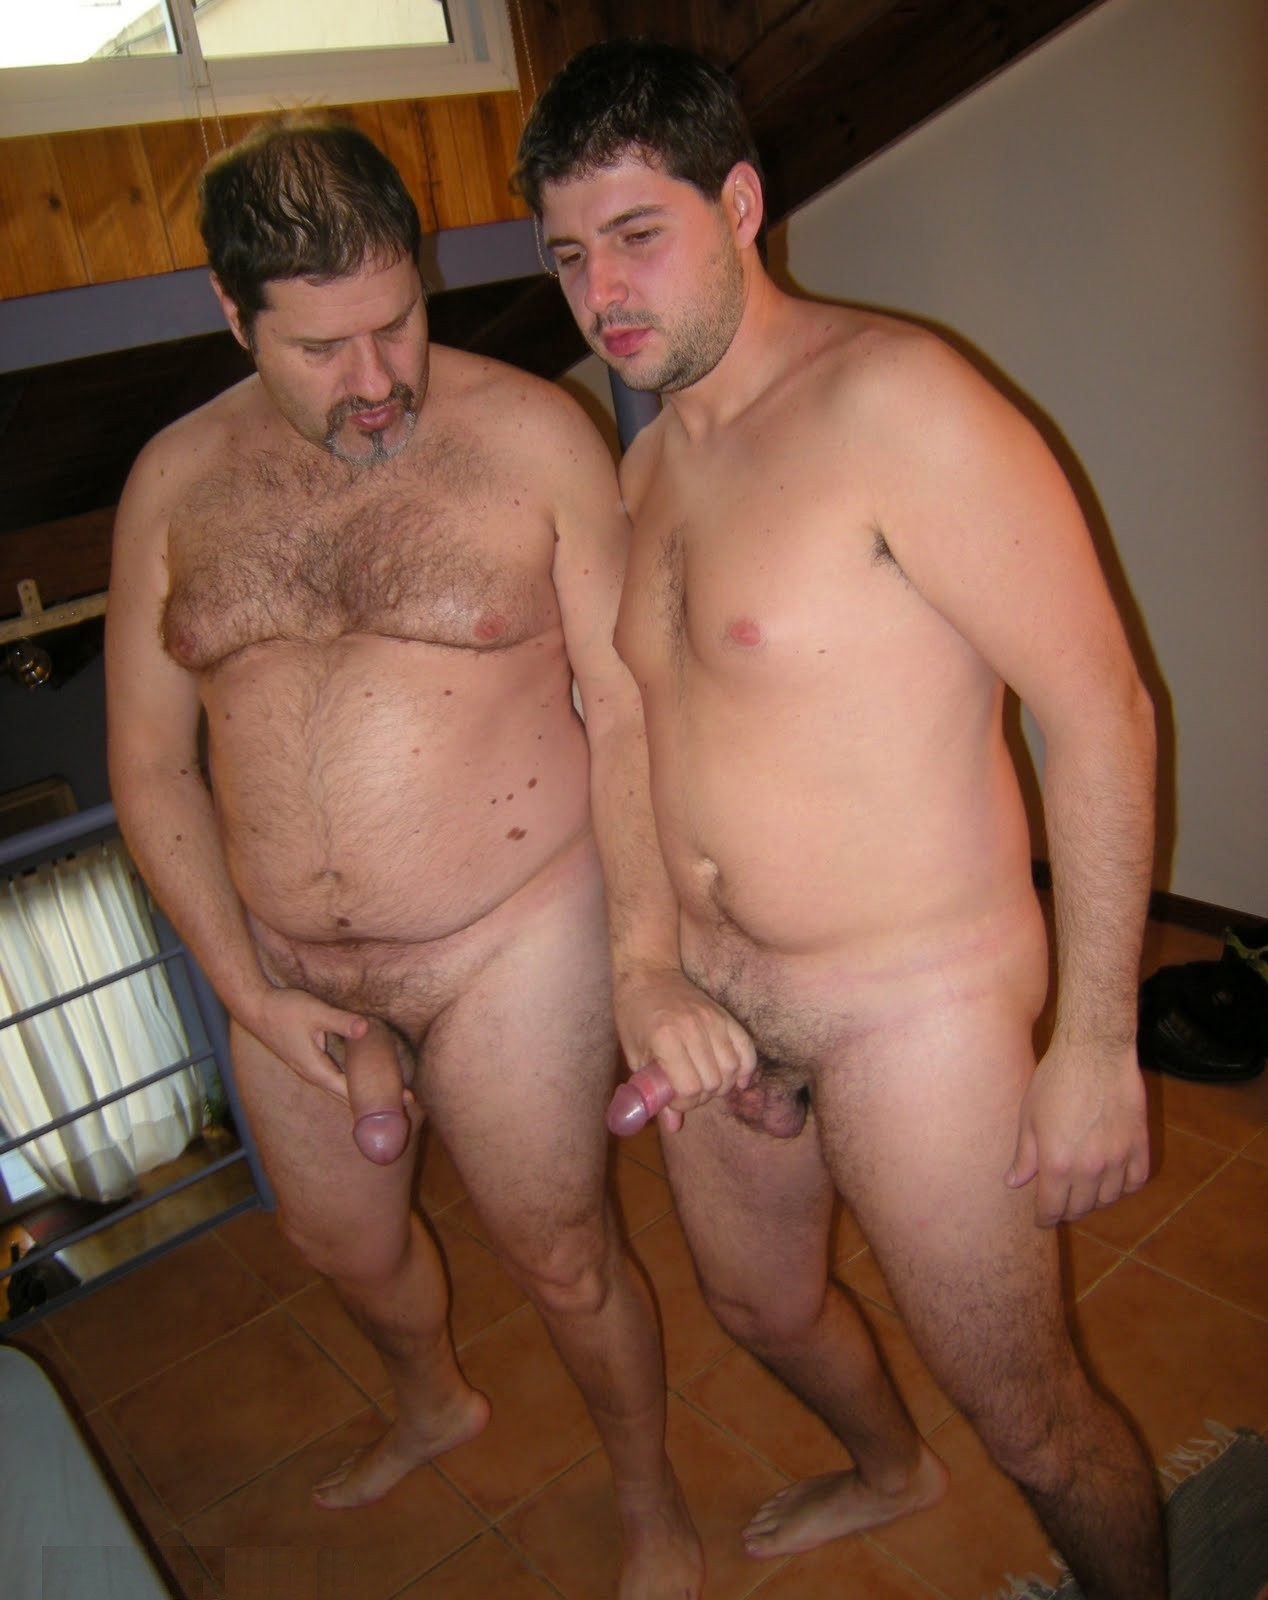 real nude father and son photos